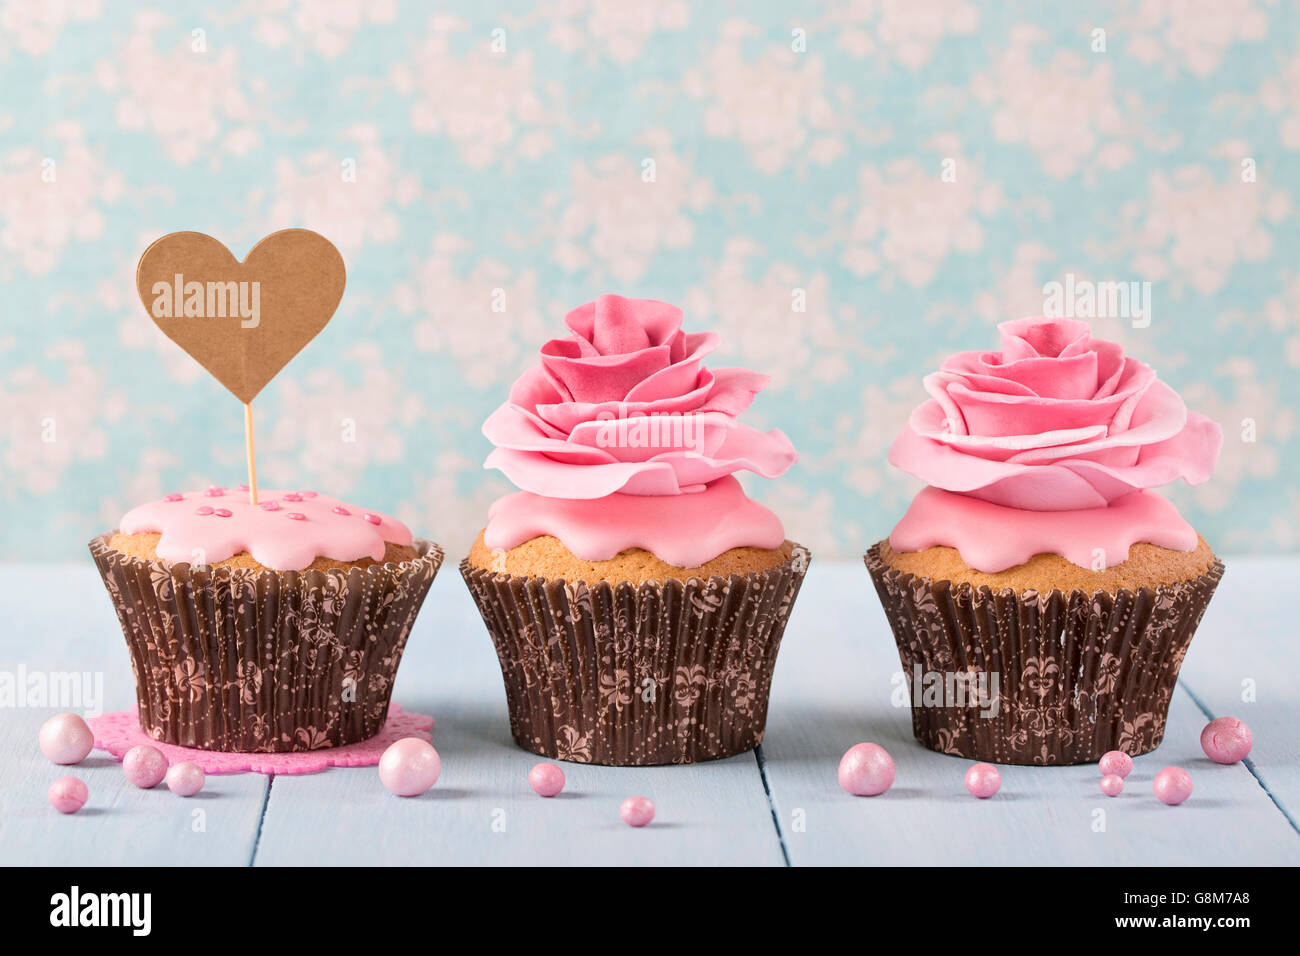 Cupcakes with heart cakepick for text - Stock Image